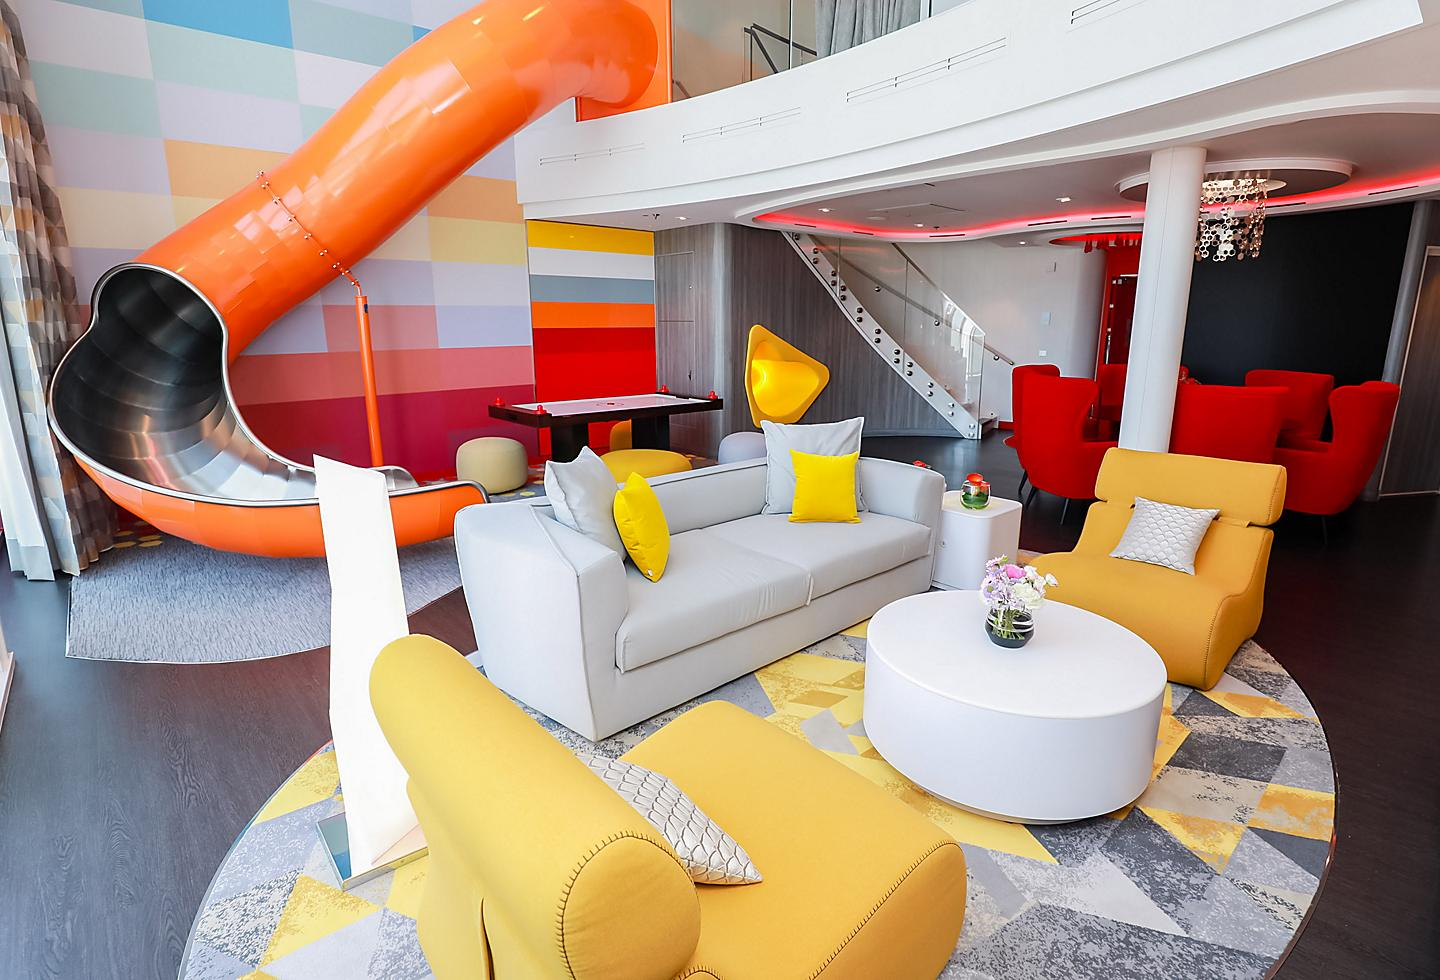 Family Suite Living Room with a Slide and Colorful Furniture.